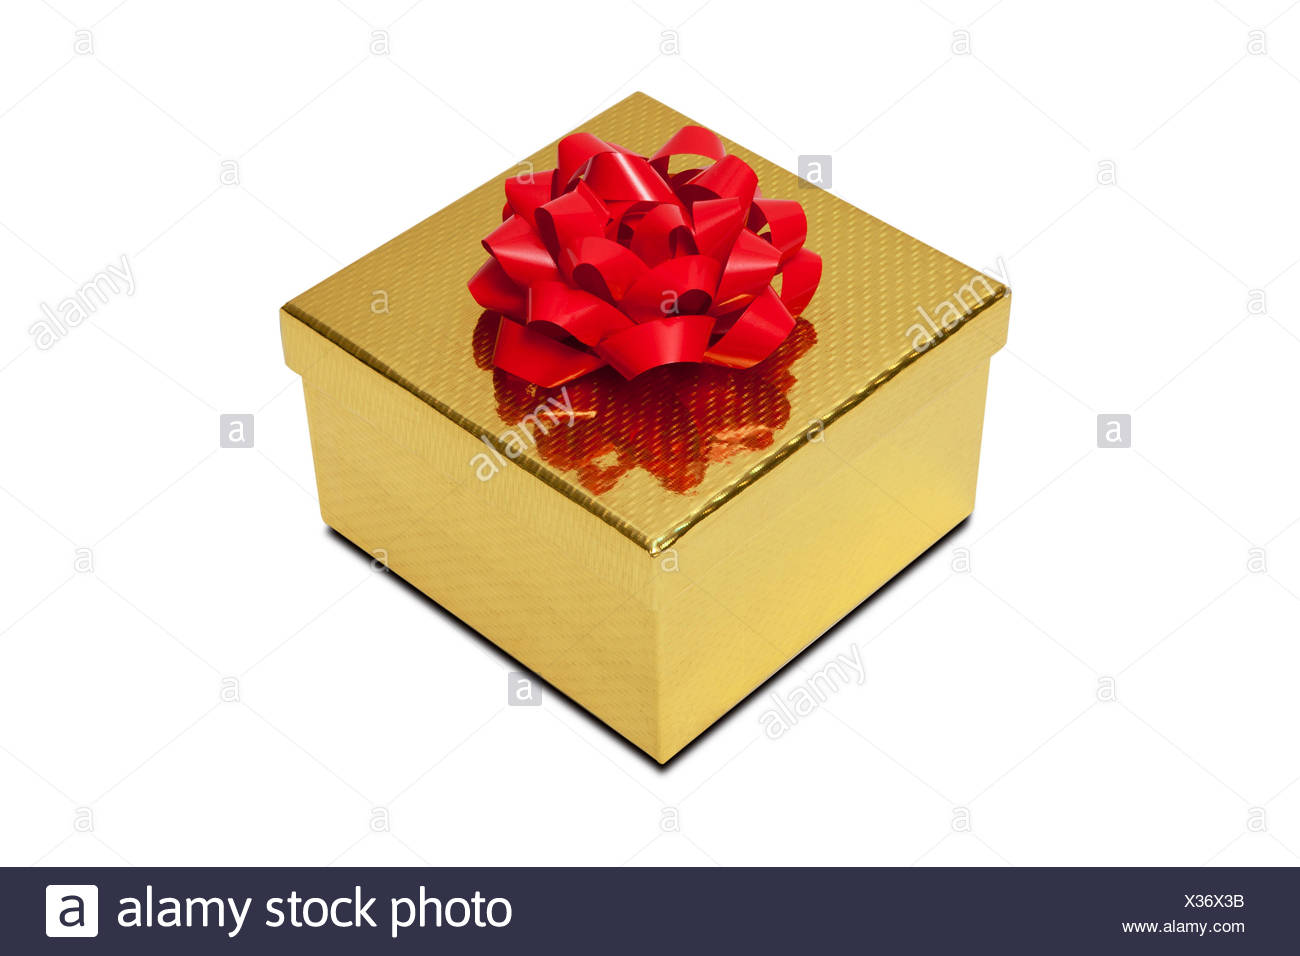 Golden gift box with red bow - Stock Image